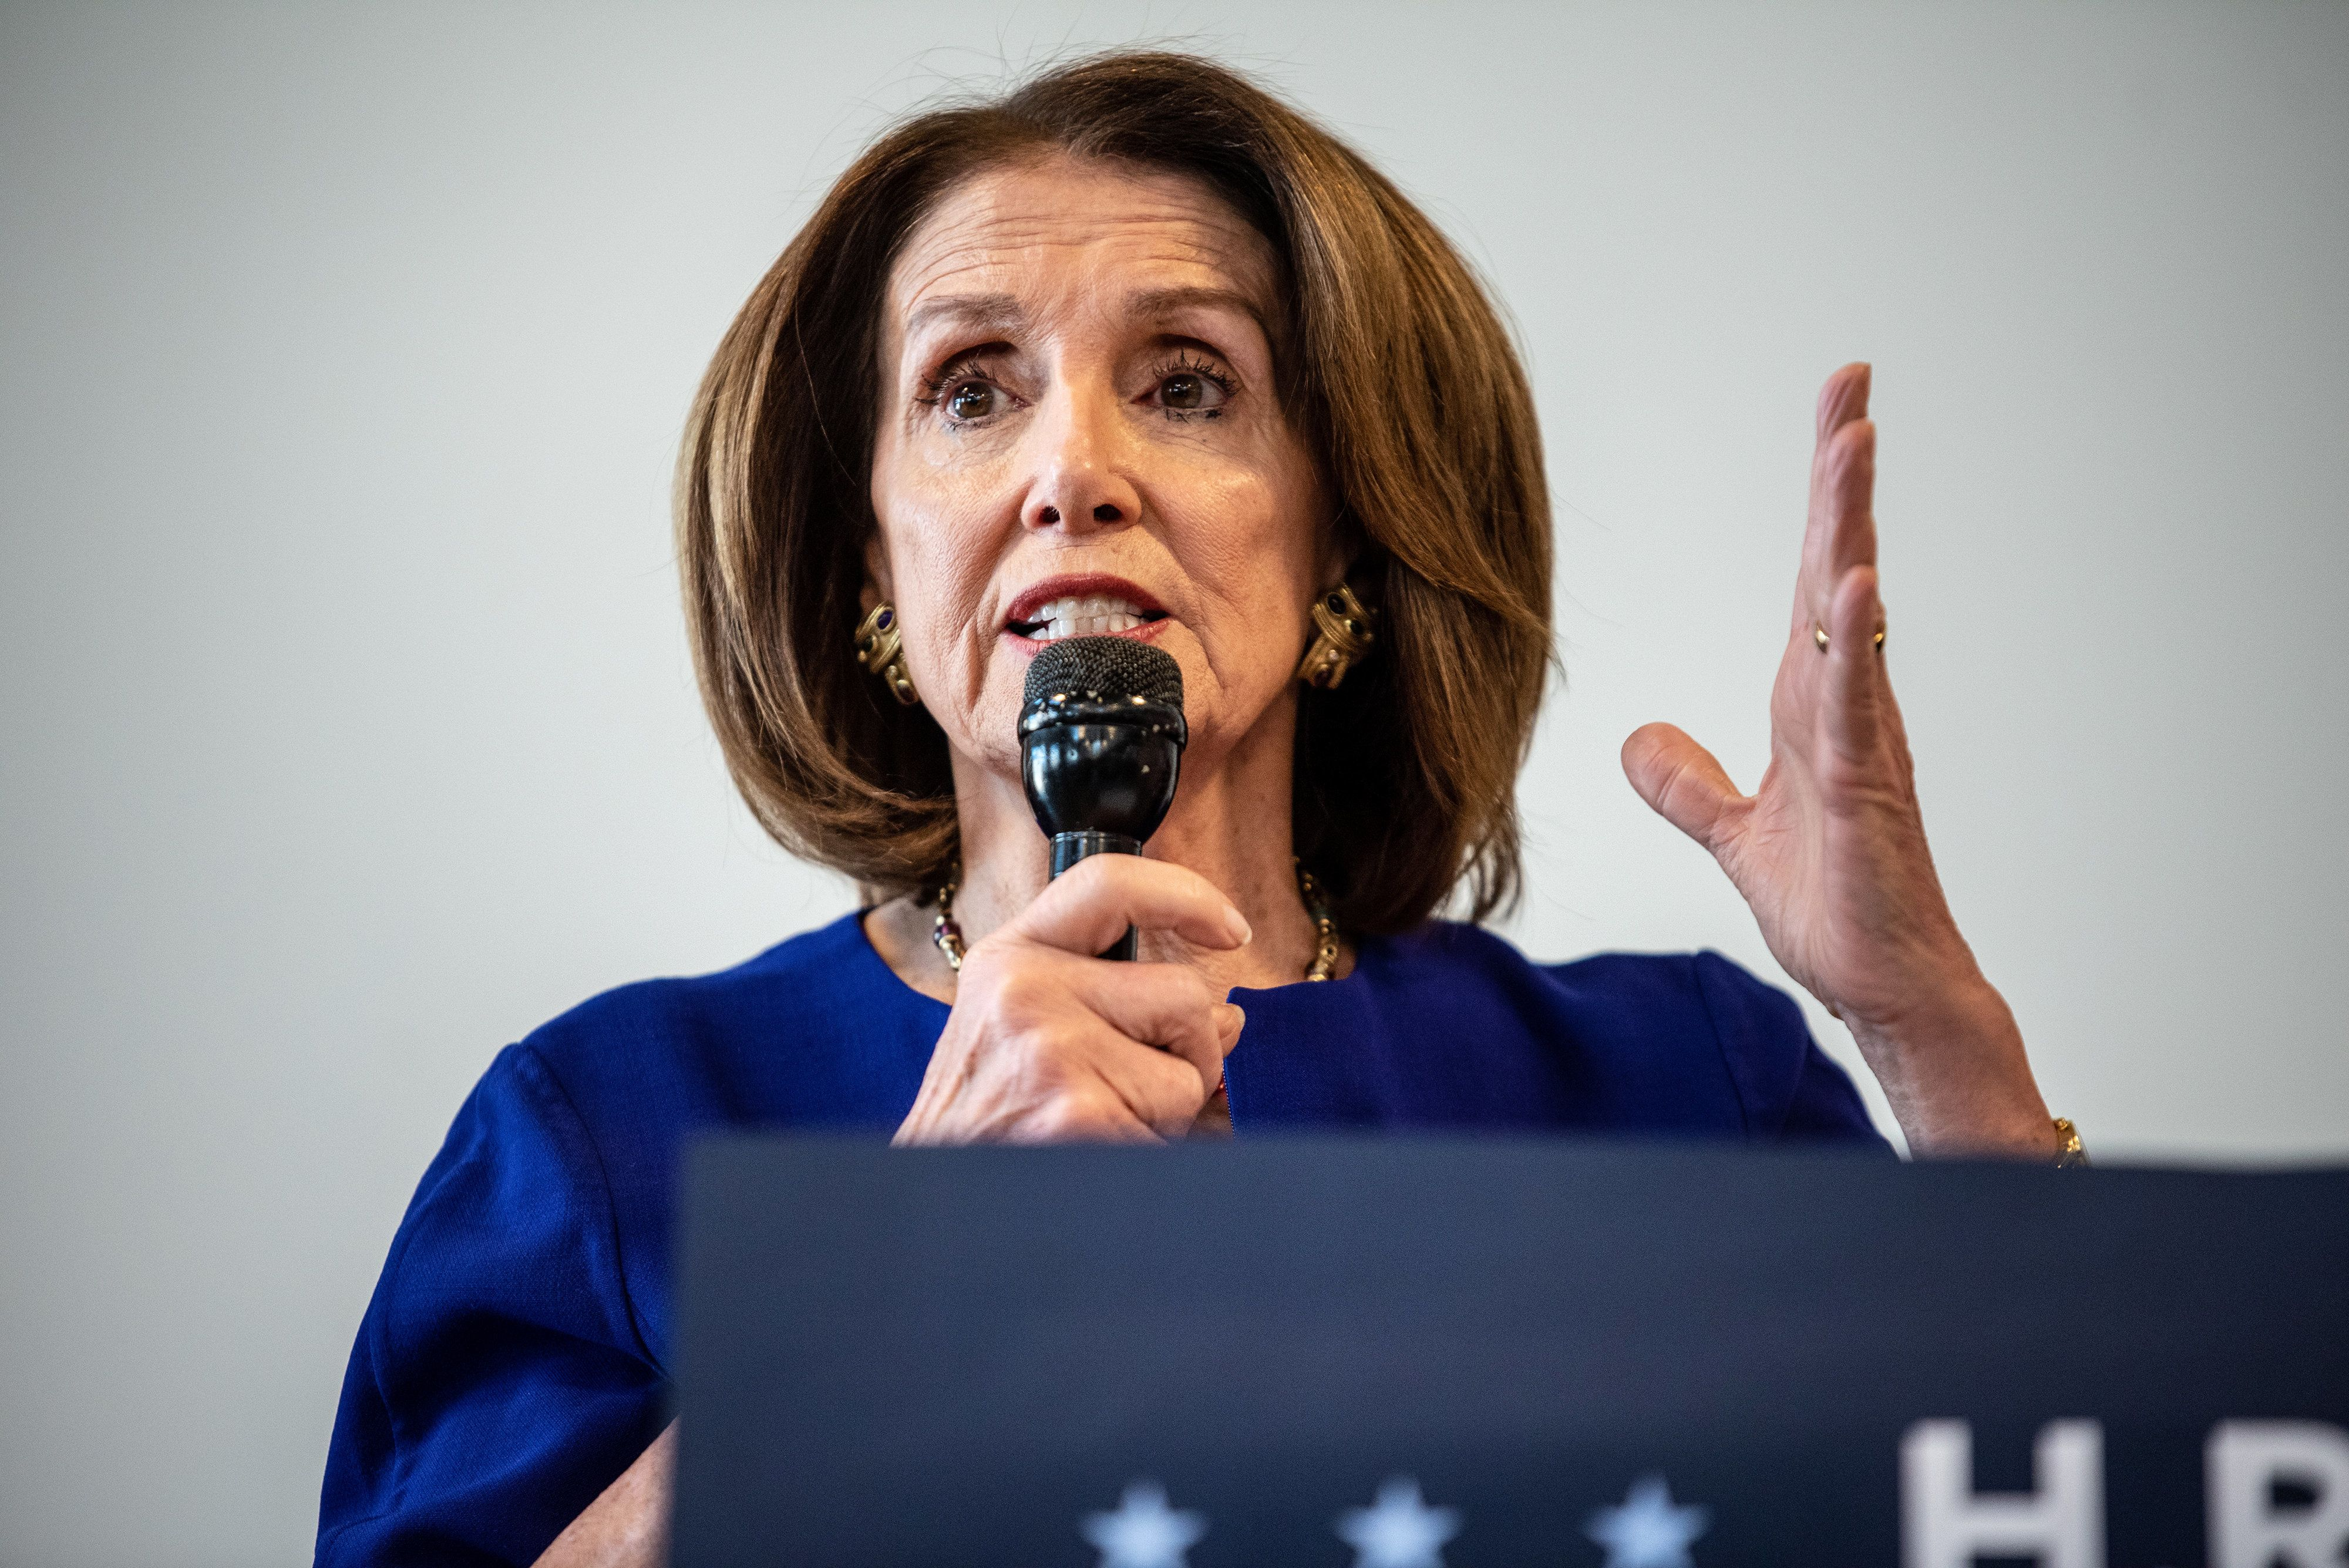 U.S. House Speaker Nancy Pelosi, a Democrat from California, speaks during an H.R. 1 act event in Austin, Texas, U.S., on Tuesday, March 5, 2019. The bill would make purges of voter rolls more difficult by requiring more stringent checks before a registered voters name can be removed, and by requiring a states cross-check of names on out-of-state voter databases to be completed no later than 6 months before an election. Photographer: Sergio Flores/Bloomberg via Getty Images